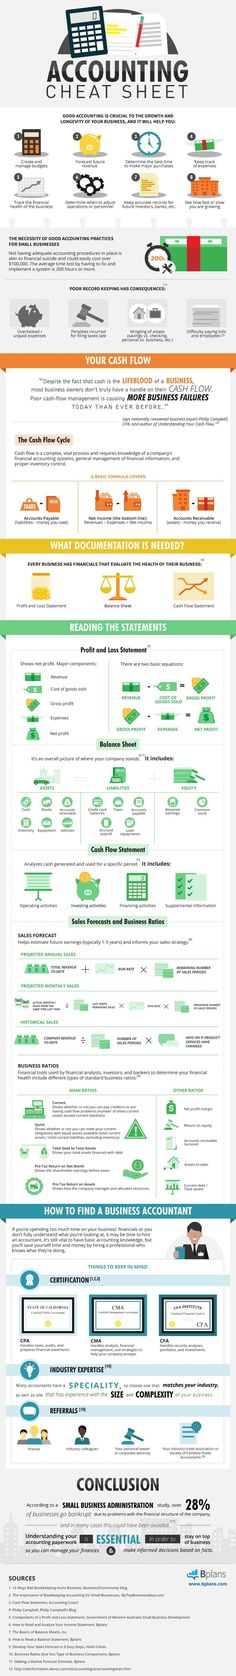 Accounting Cheat Sheet #Infographics